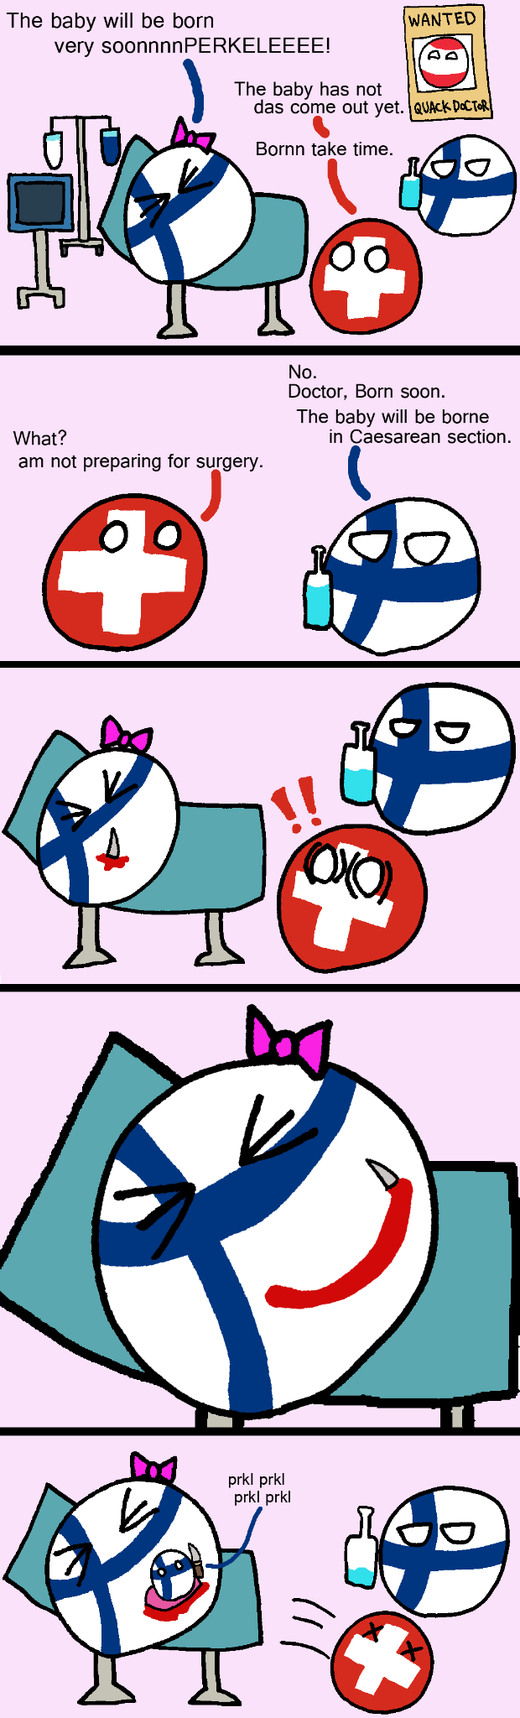 How to birth: Finland Edition - meme